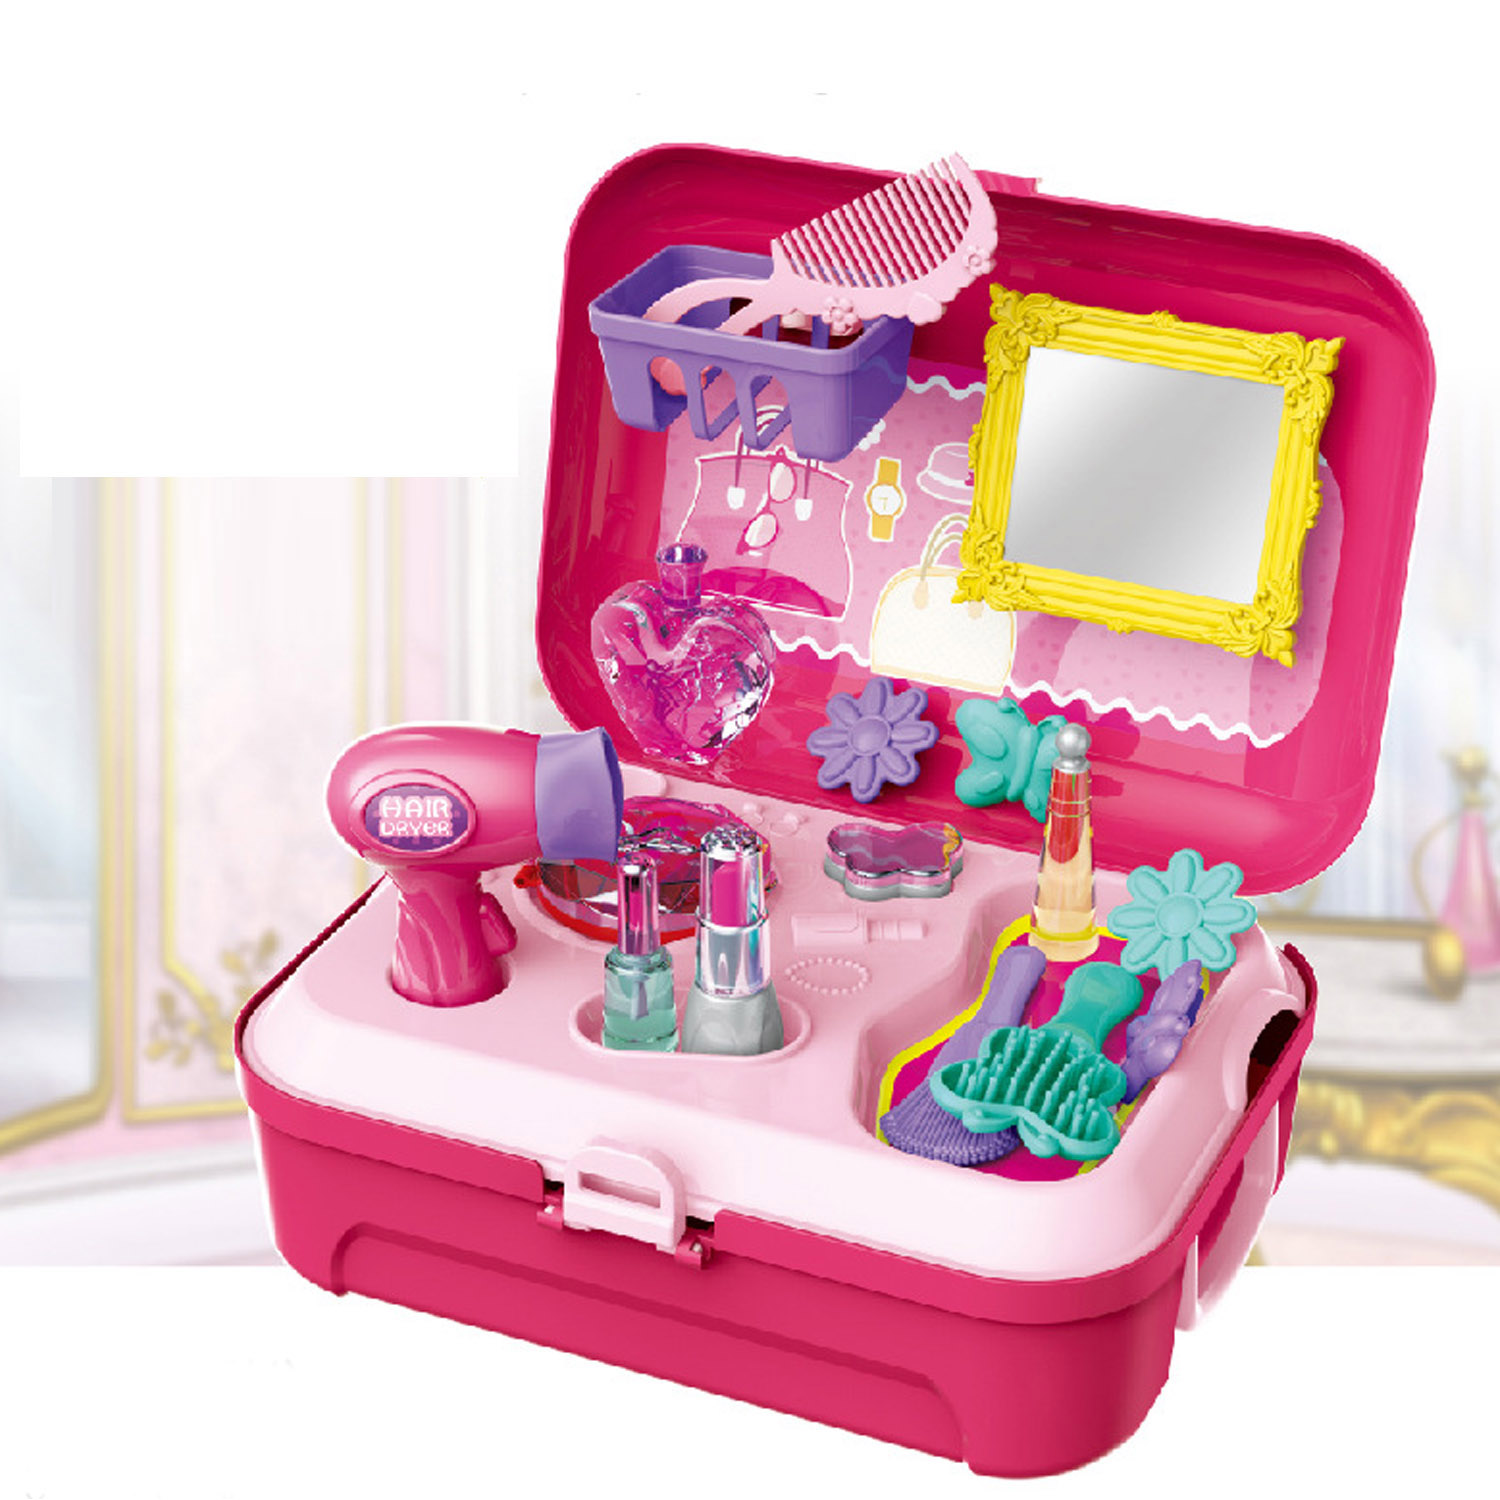 Kids Girls Princess Makeup Tools Cosmetic Box Pretend Play Toy Makeup Mirror Lip Gloss Hair Dryer Comb Hair Accessories Toy